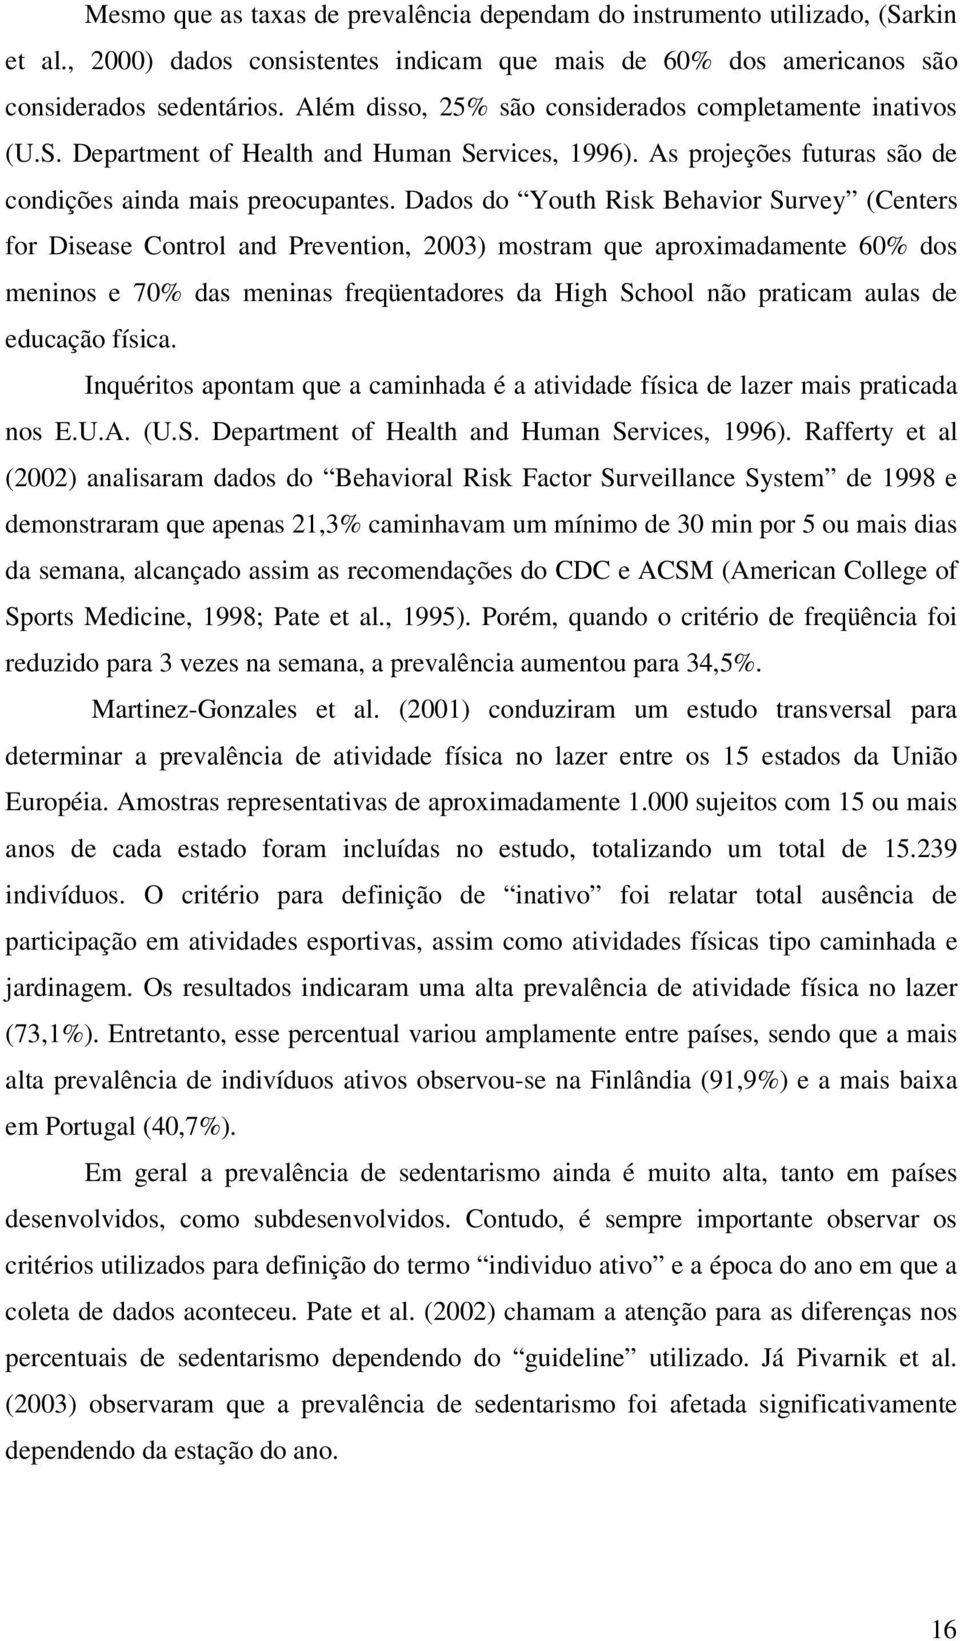 Dados do Youth Risk Behavior Survey (Centers for Disease Control and Prevention, 2003) mostram que aproximadamente 60% dos meninos e 70% das meninas freqüentadores da High School não praticam aulas